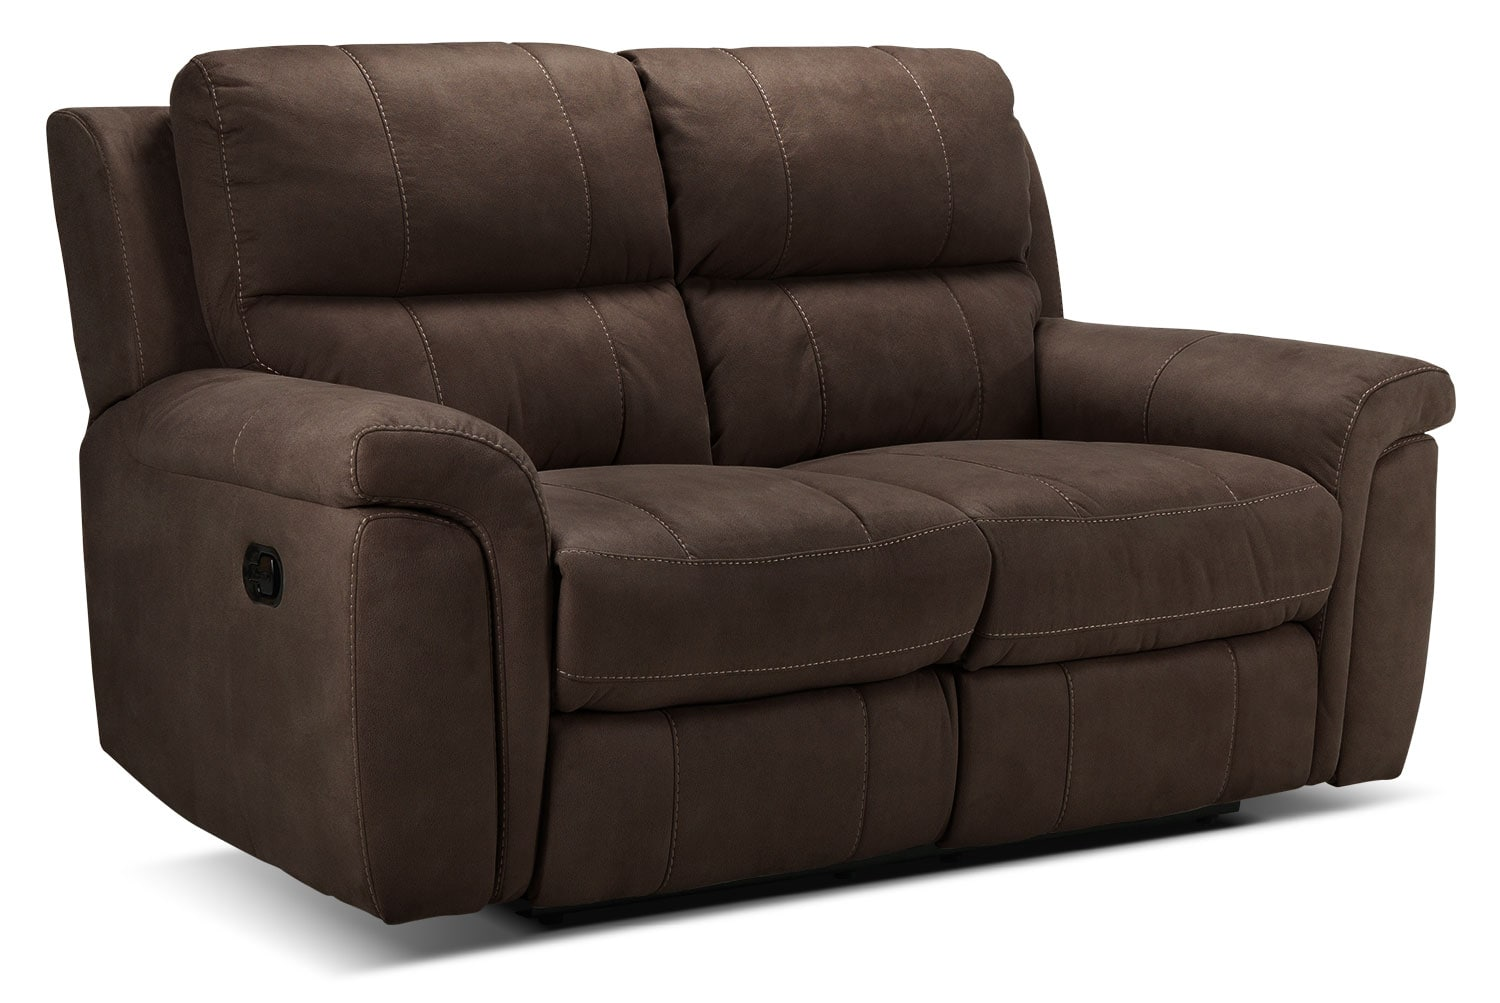 Roarke Reclining Loveseat - Walnut